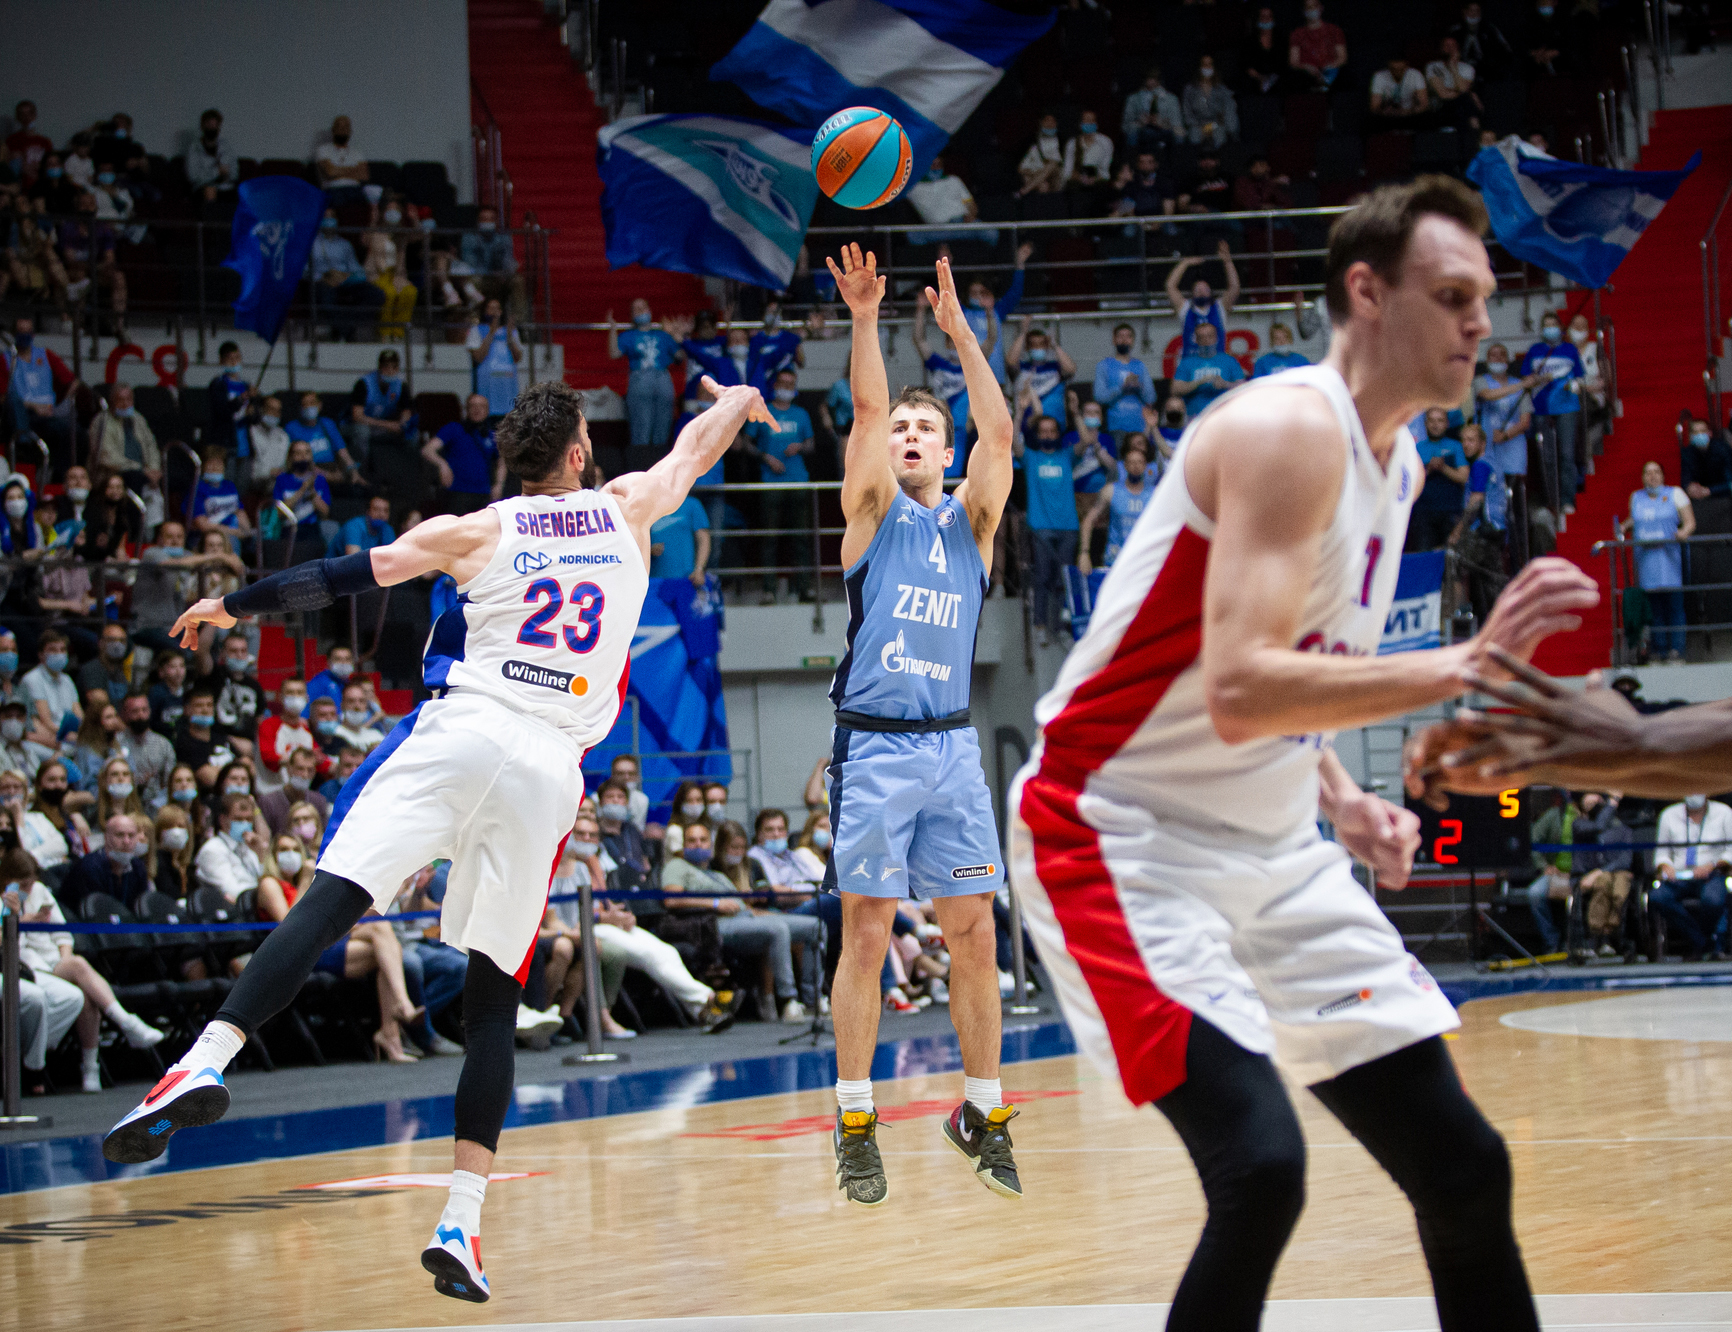 Zenit beat CSKA in double OT game and tie the series